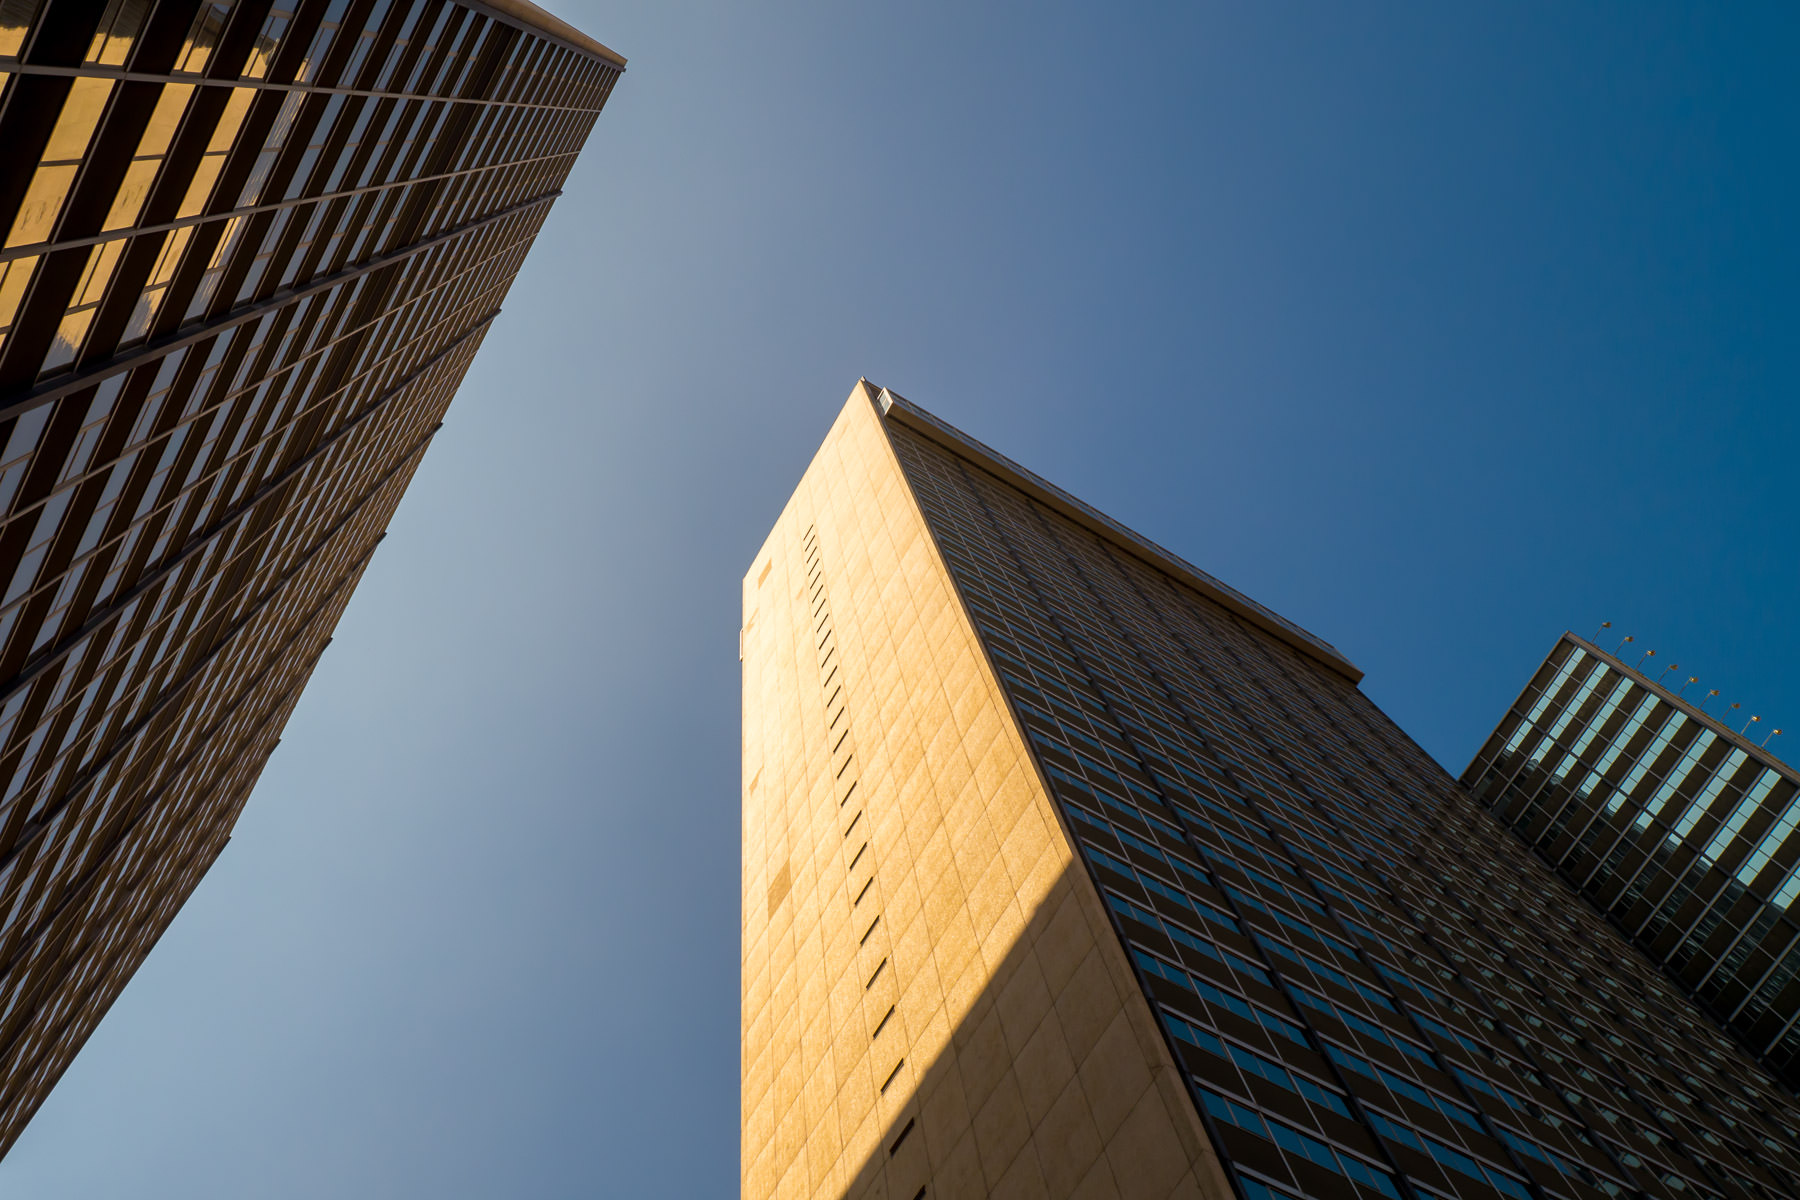 The Sheraton Hotel in Downtown Dallas' towers reach for the clear North Texas sky.